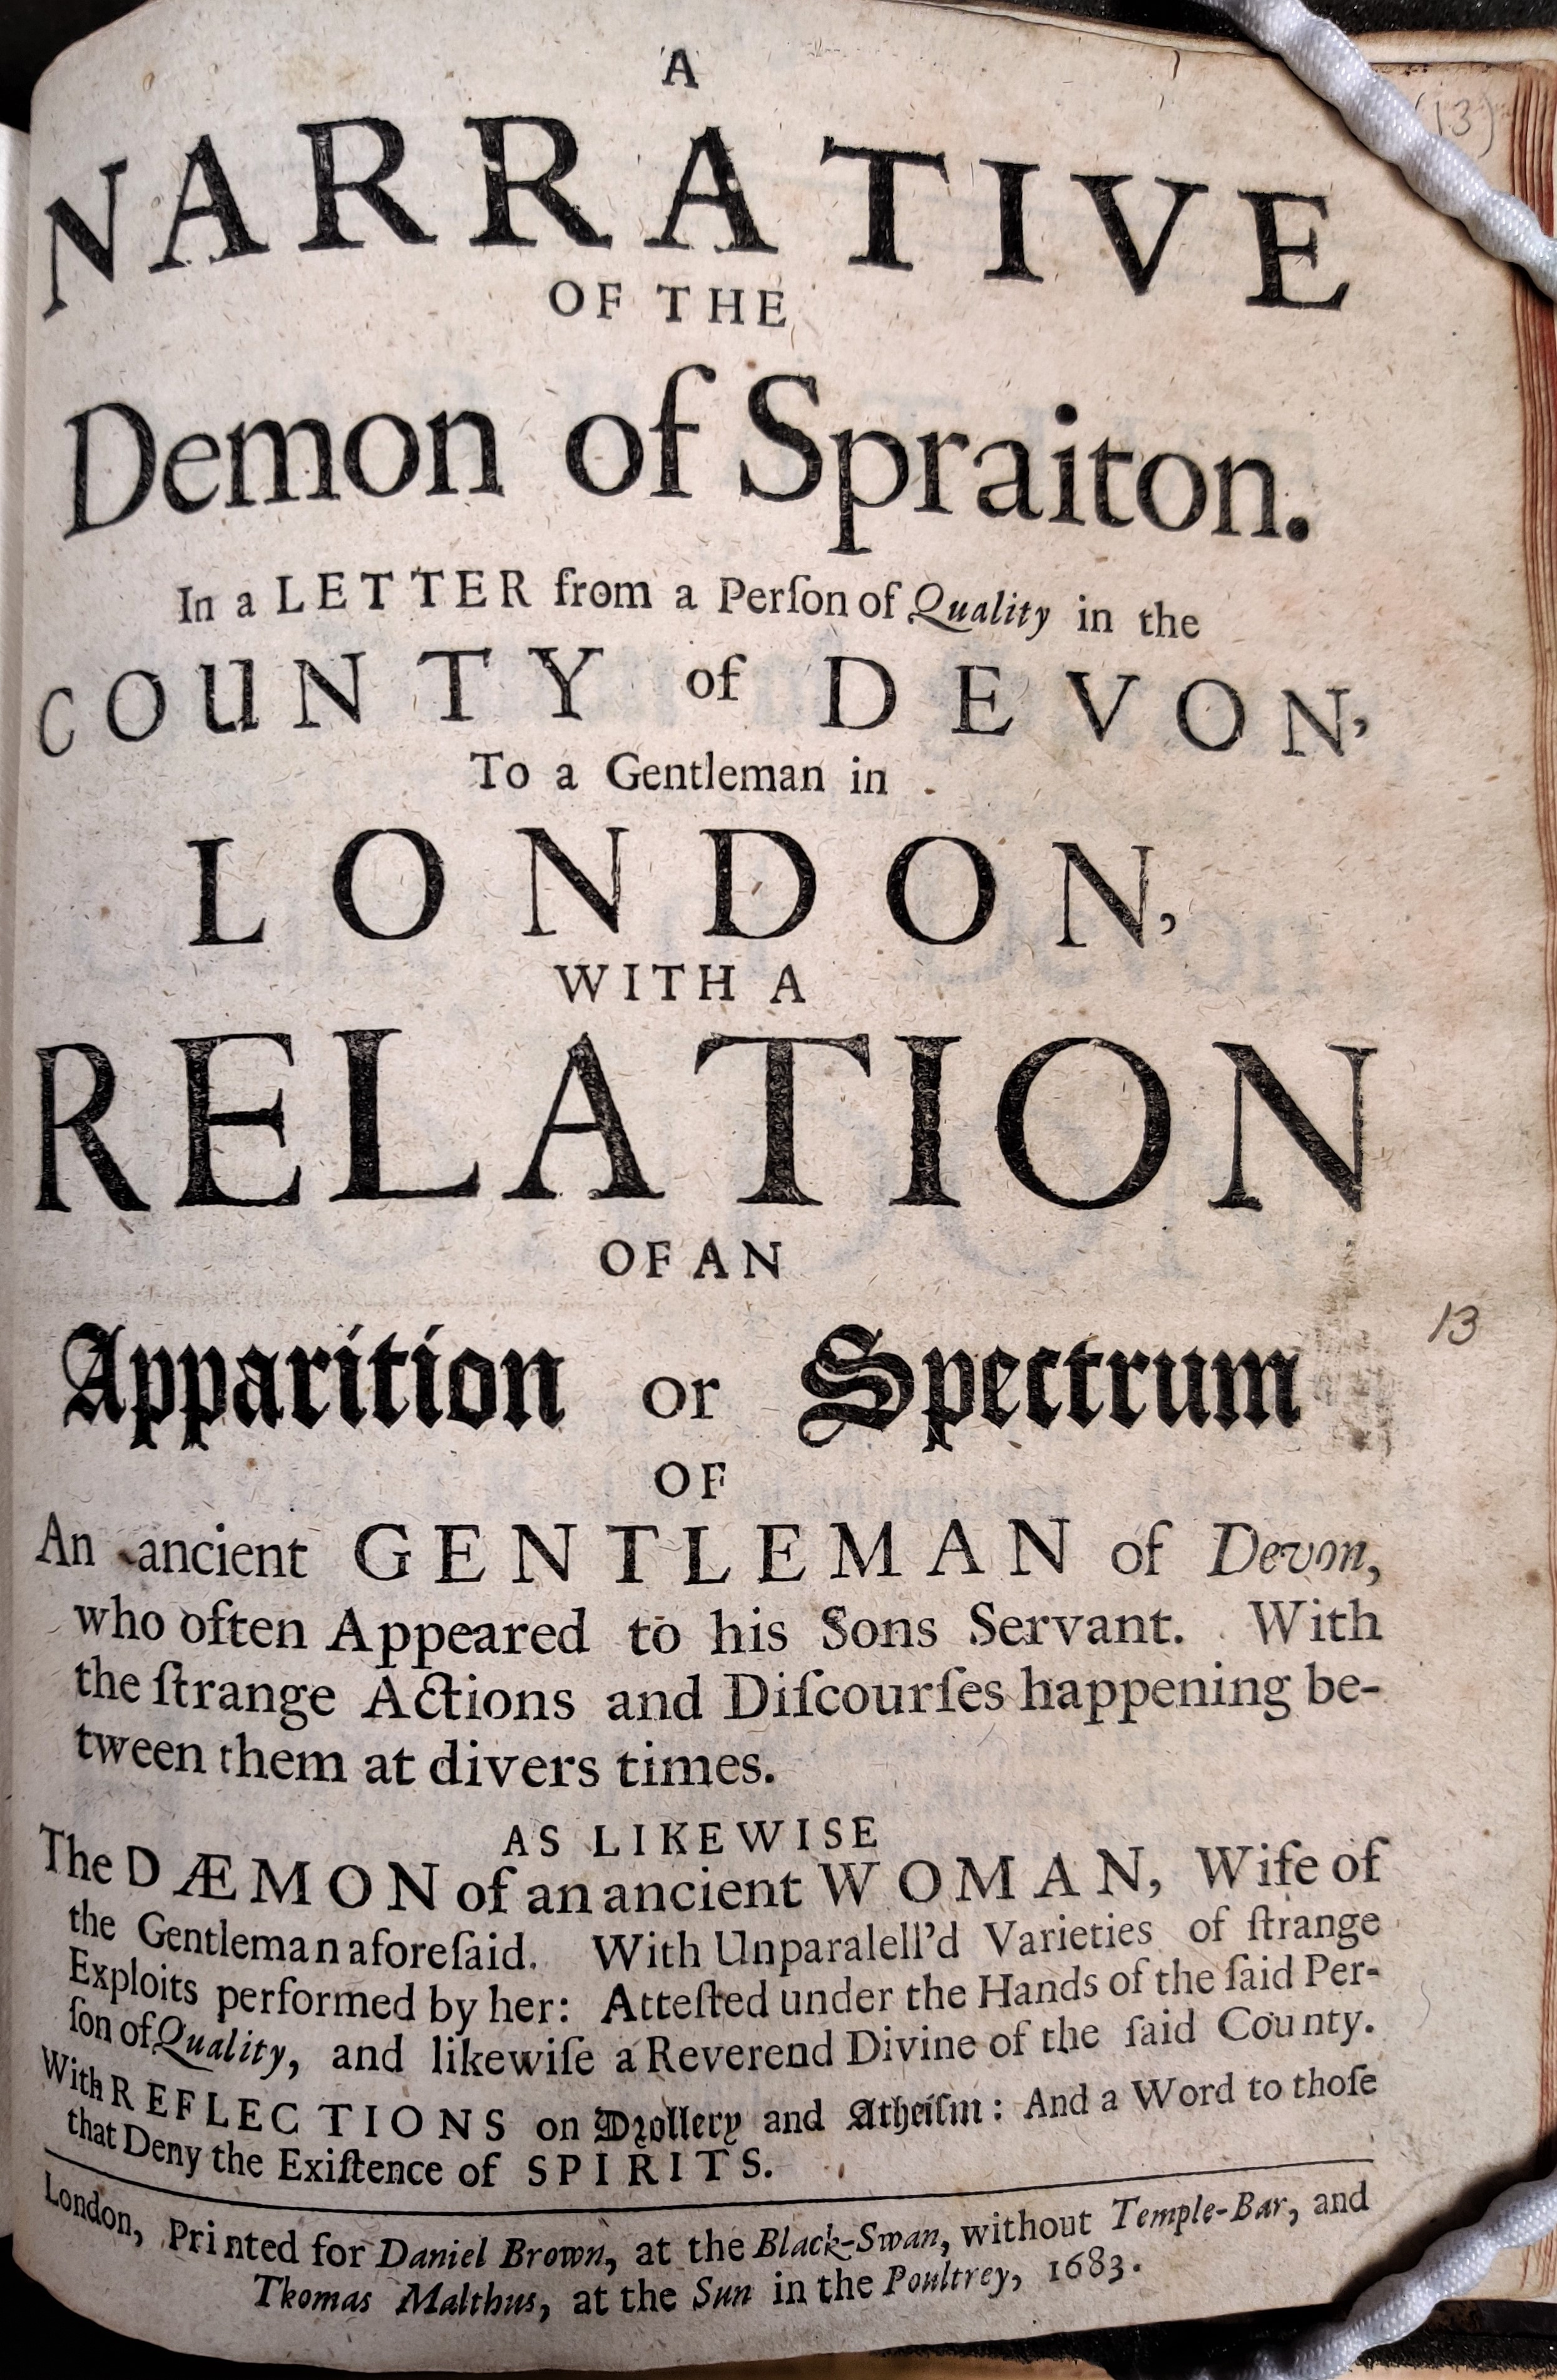 Title page of A Narrative of the Demon of Spraiton